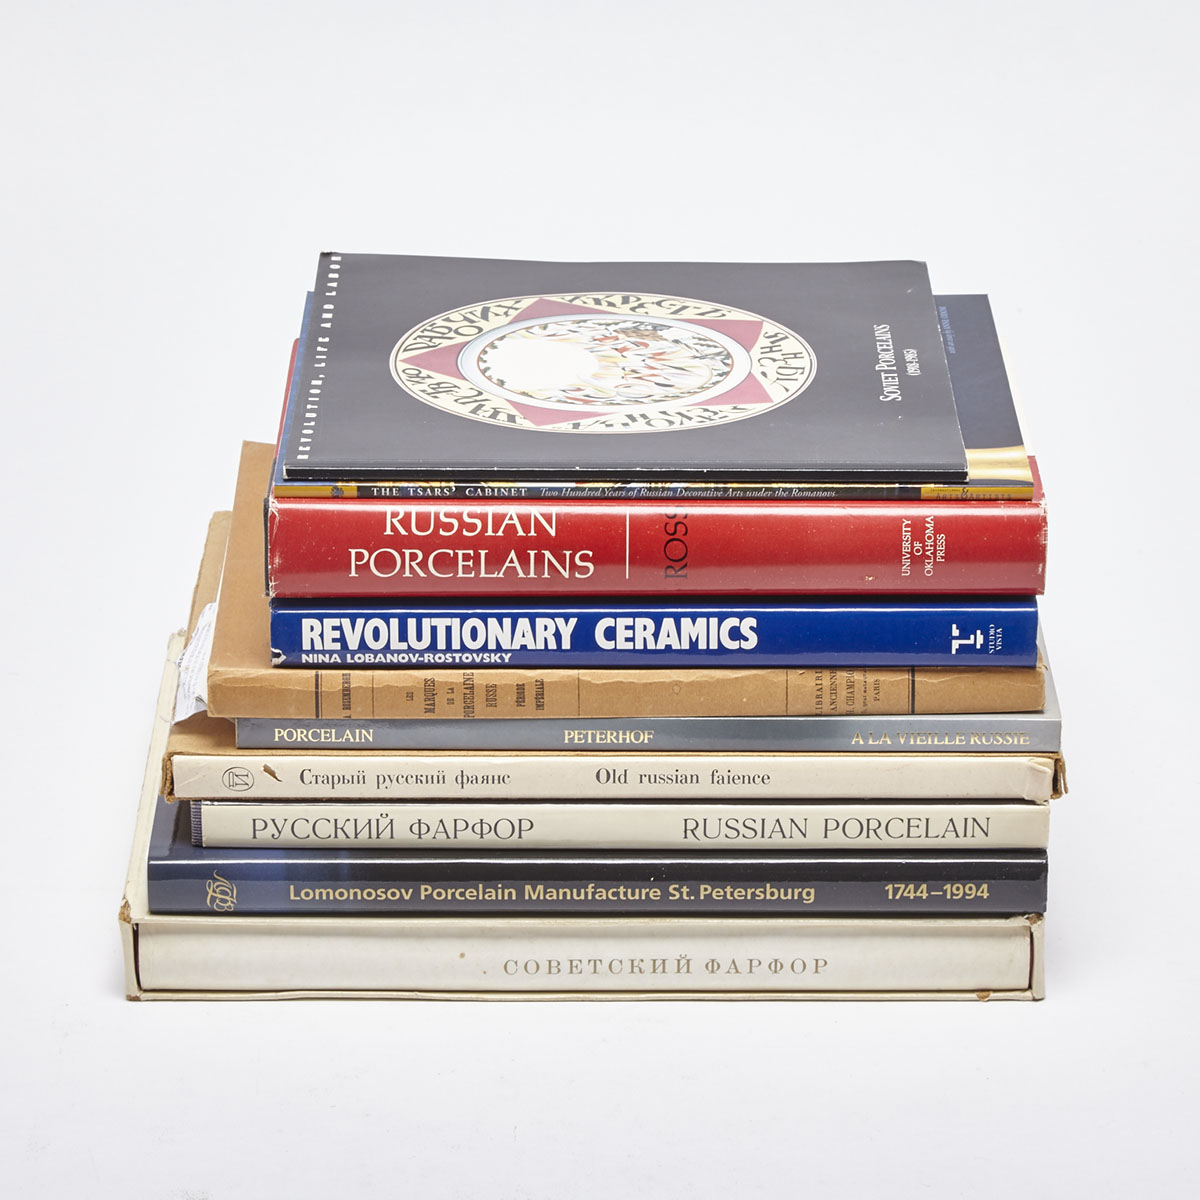 Russian Porcelain (10 volumes)